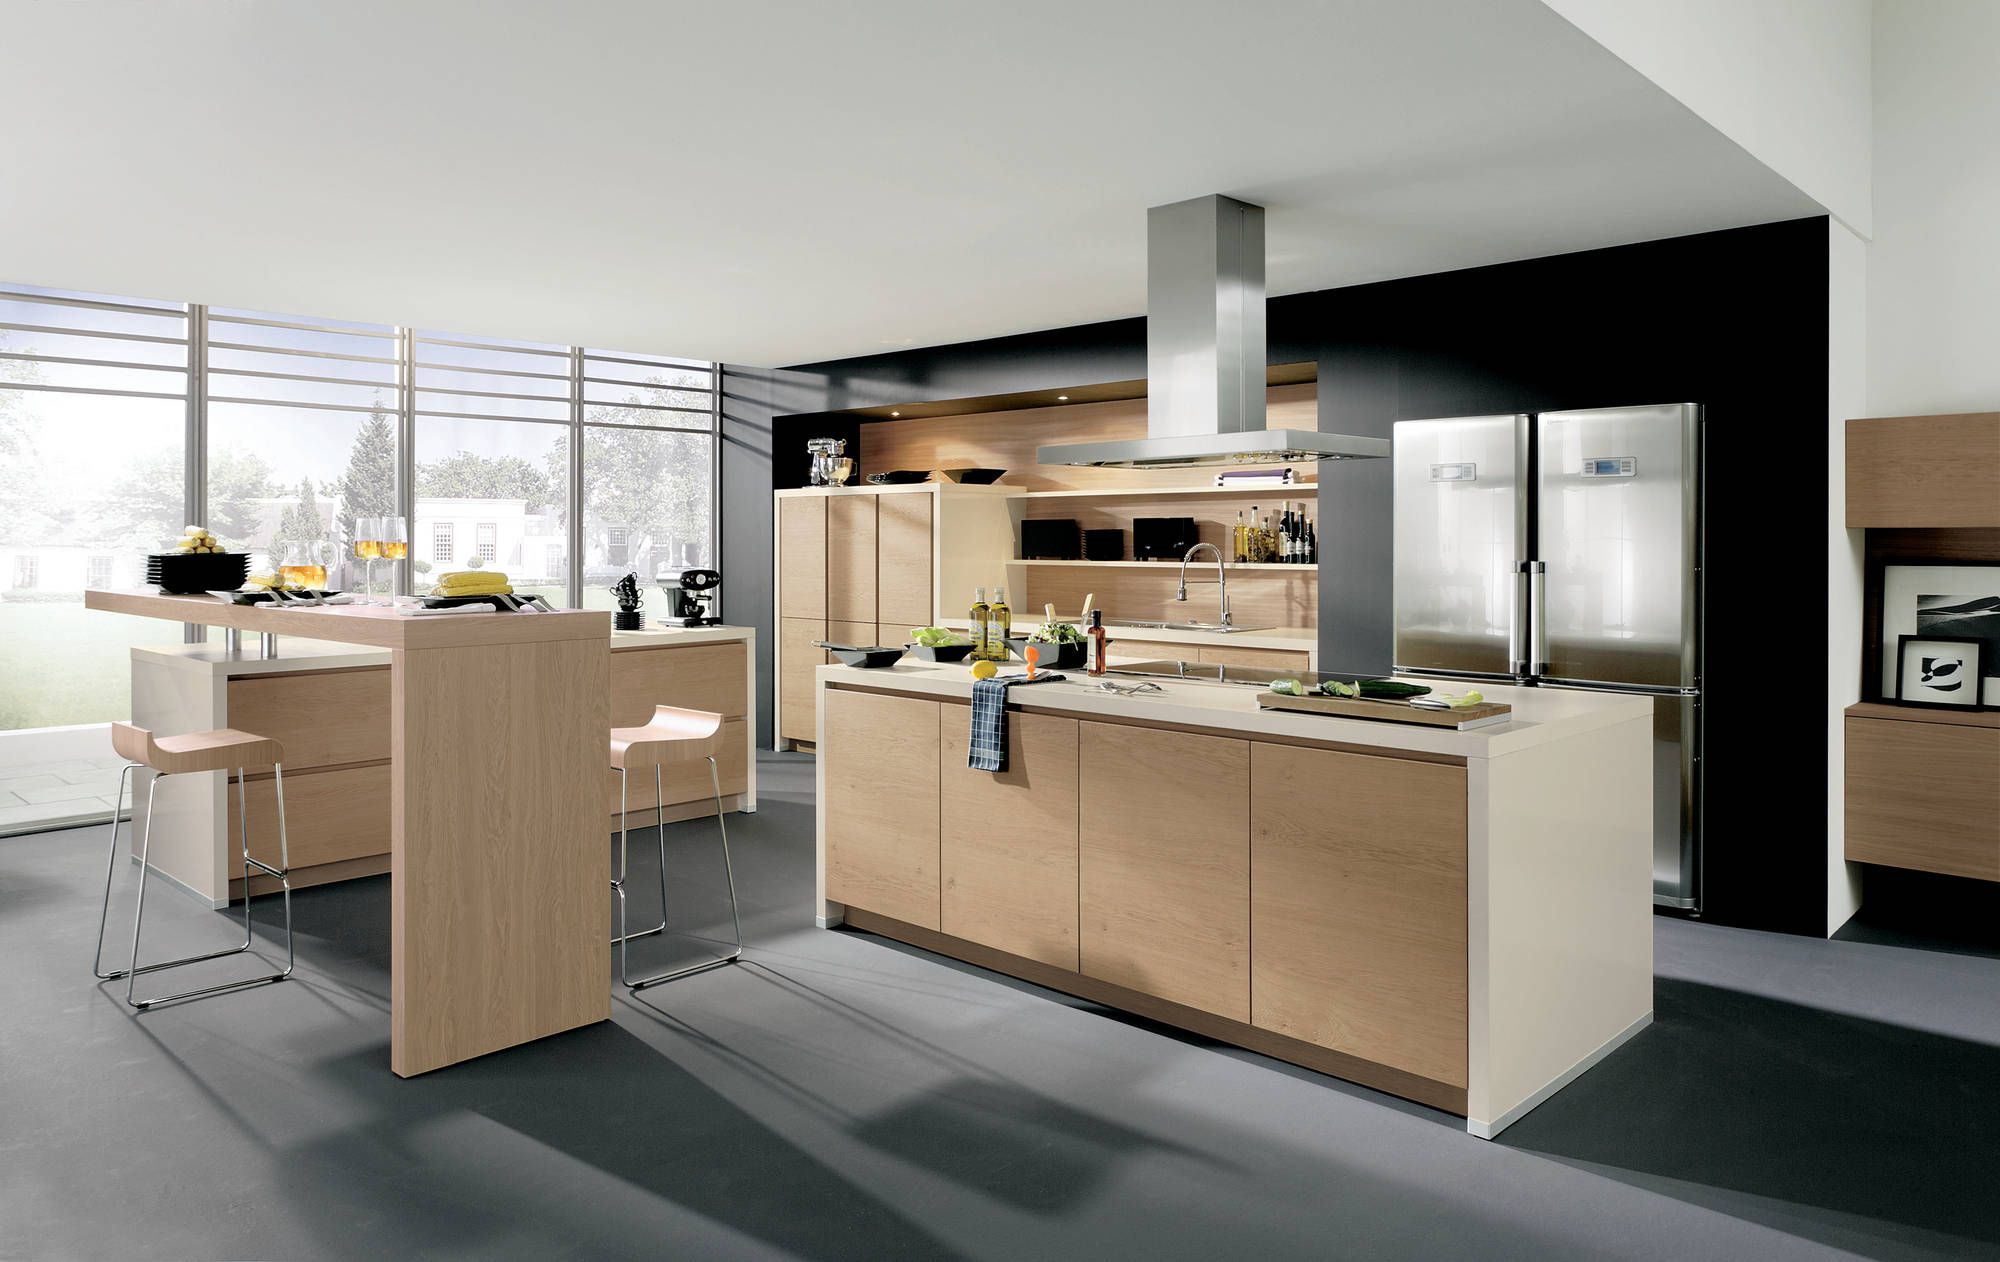 Solid Wood Veneer With Horizontal Grain Create A Feeling Of Earthiness Light Wood Kitchens Modern Kitchen Cabinet Design Modern Wooden Kitchen